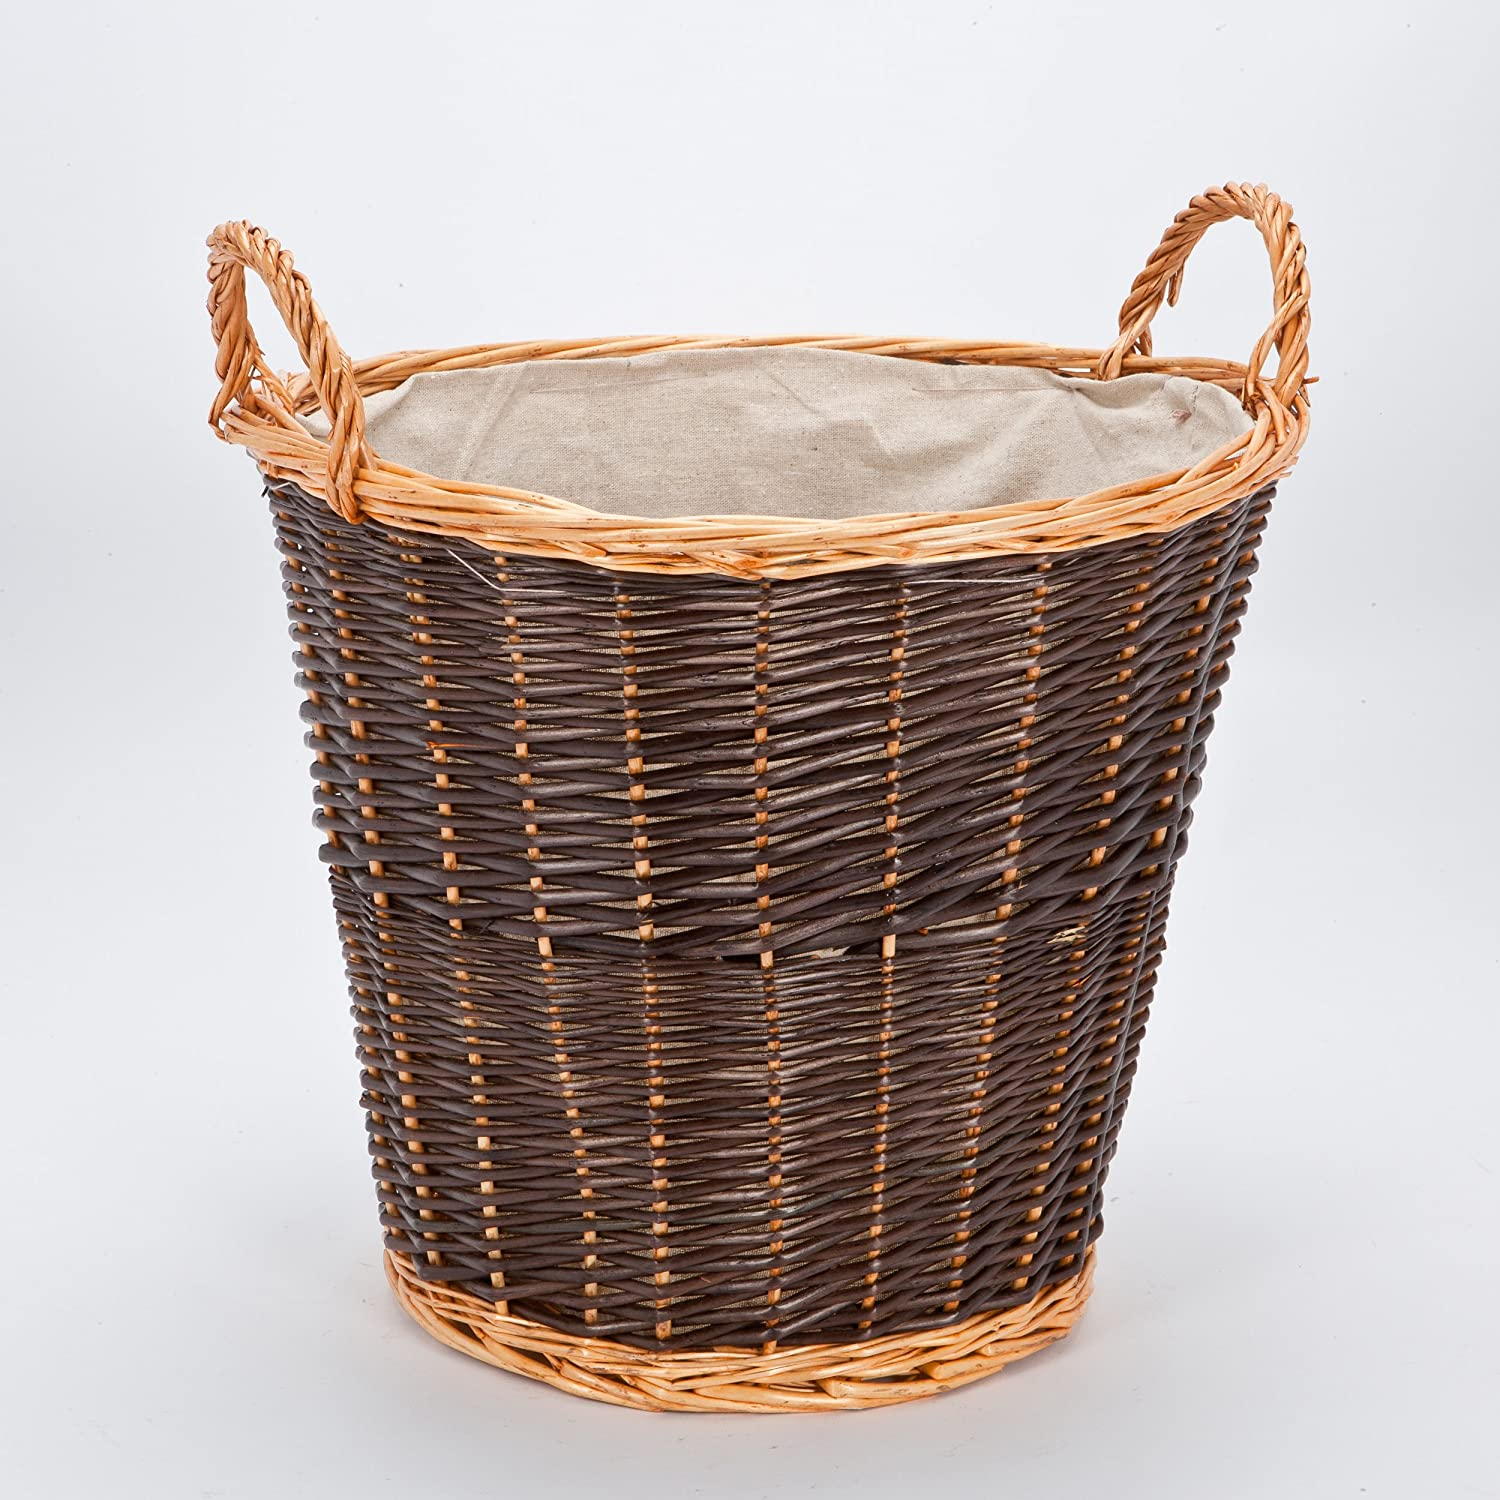 RUSTIC Circular Wicker Log Basket with Fixed Lining LHS